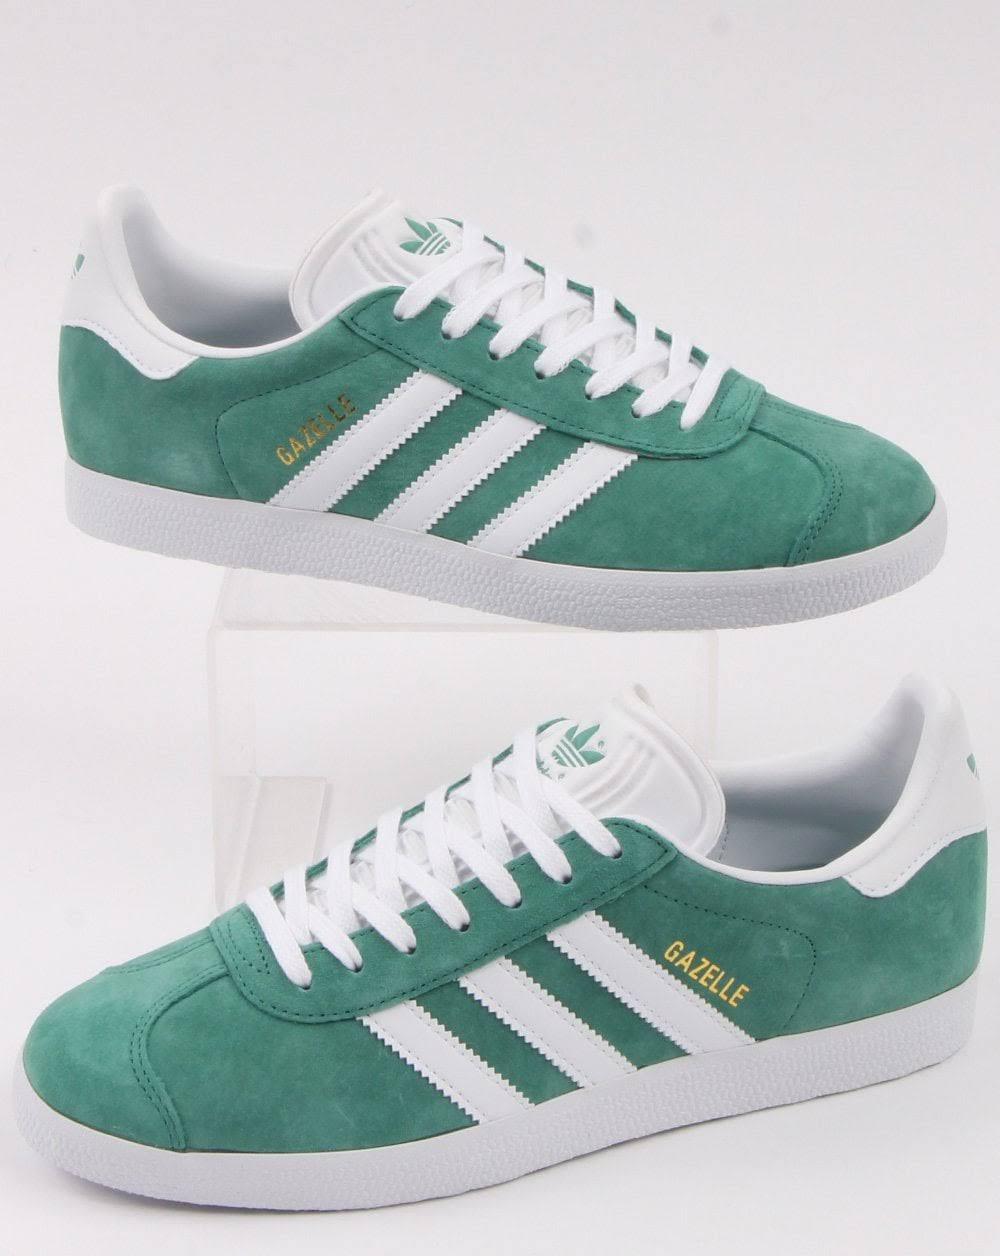 adidas Trainers GAZELLE TRAINERS Size: 8.5 FUTURE HYDRO/WHITE